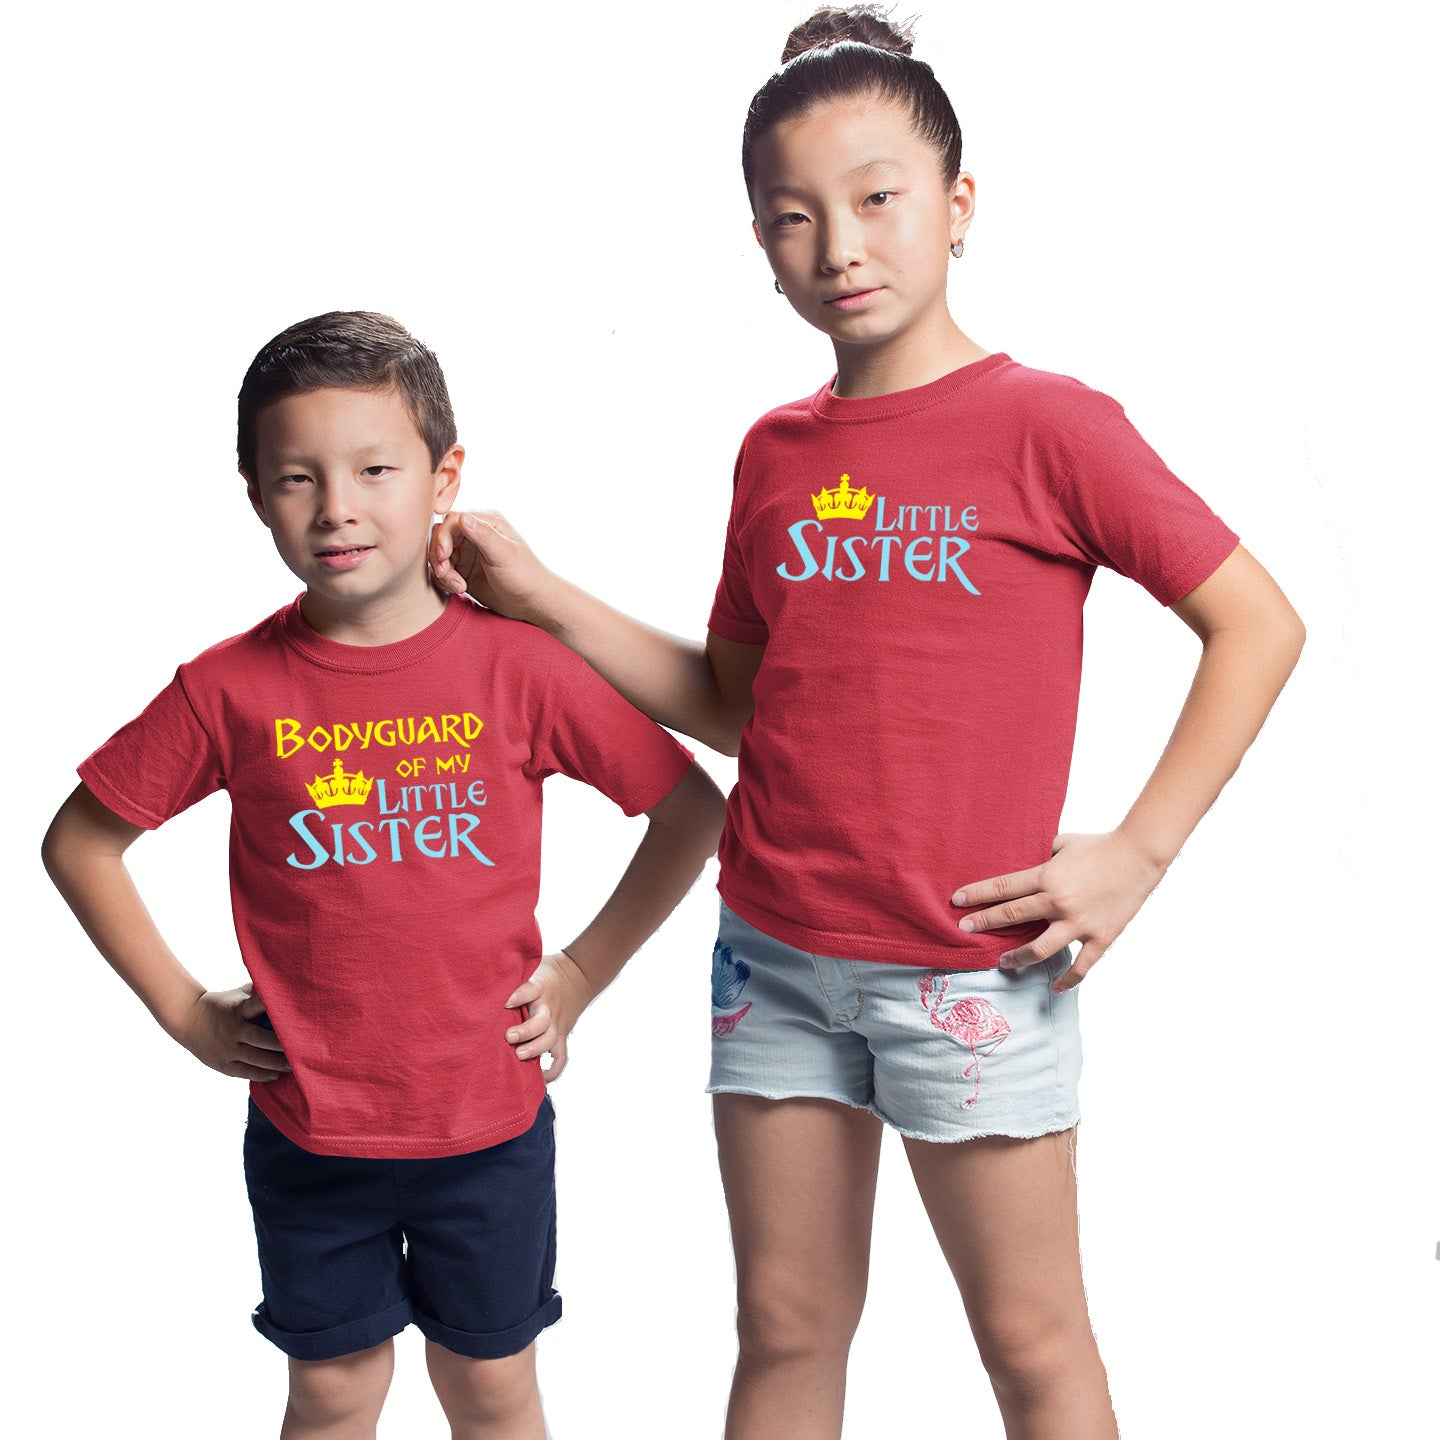 Sprinklecart Matching Little Sister Bodyguard of My Little Sister Printed Cotton T Shirt Combo for Kids (Red)